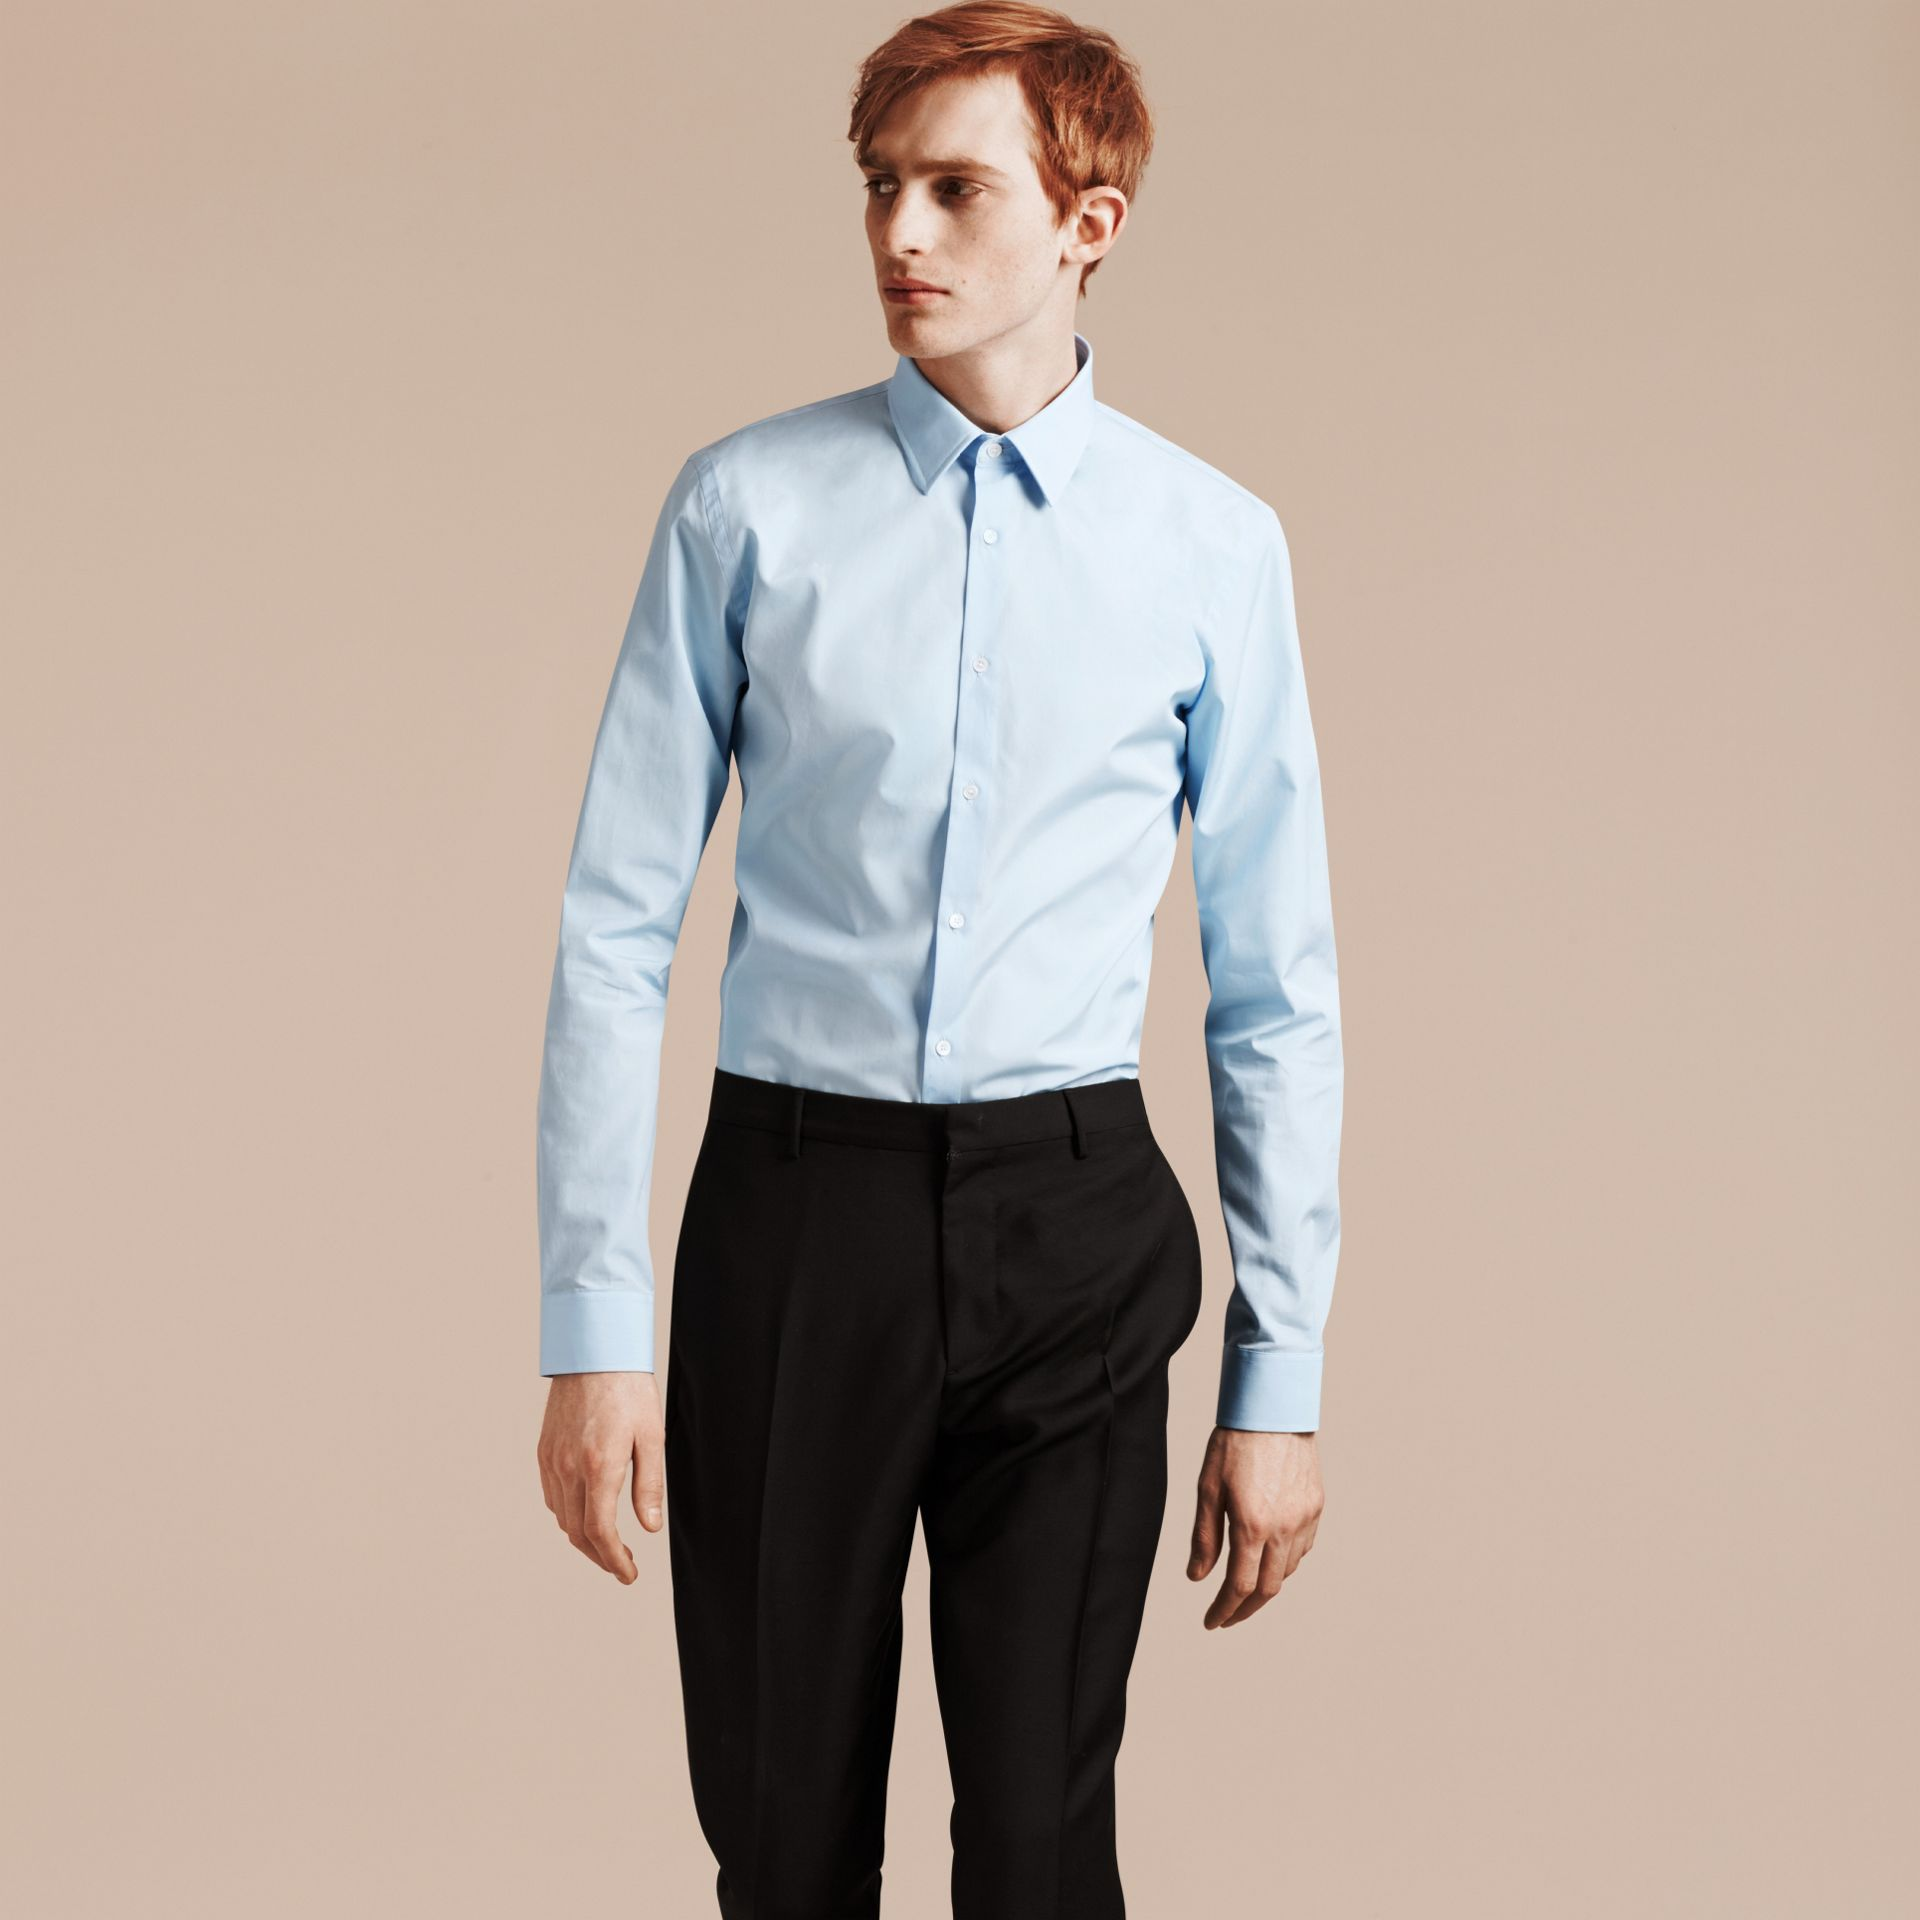 Slim Fit Cotton Poplin Shirt in City Blue - Men | Burberry Singapore - gallery image 6